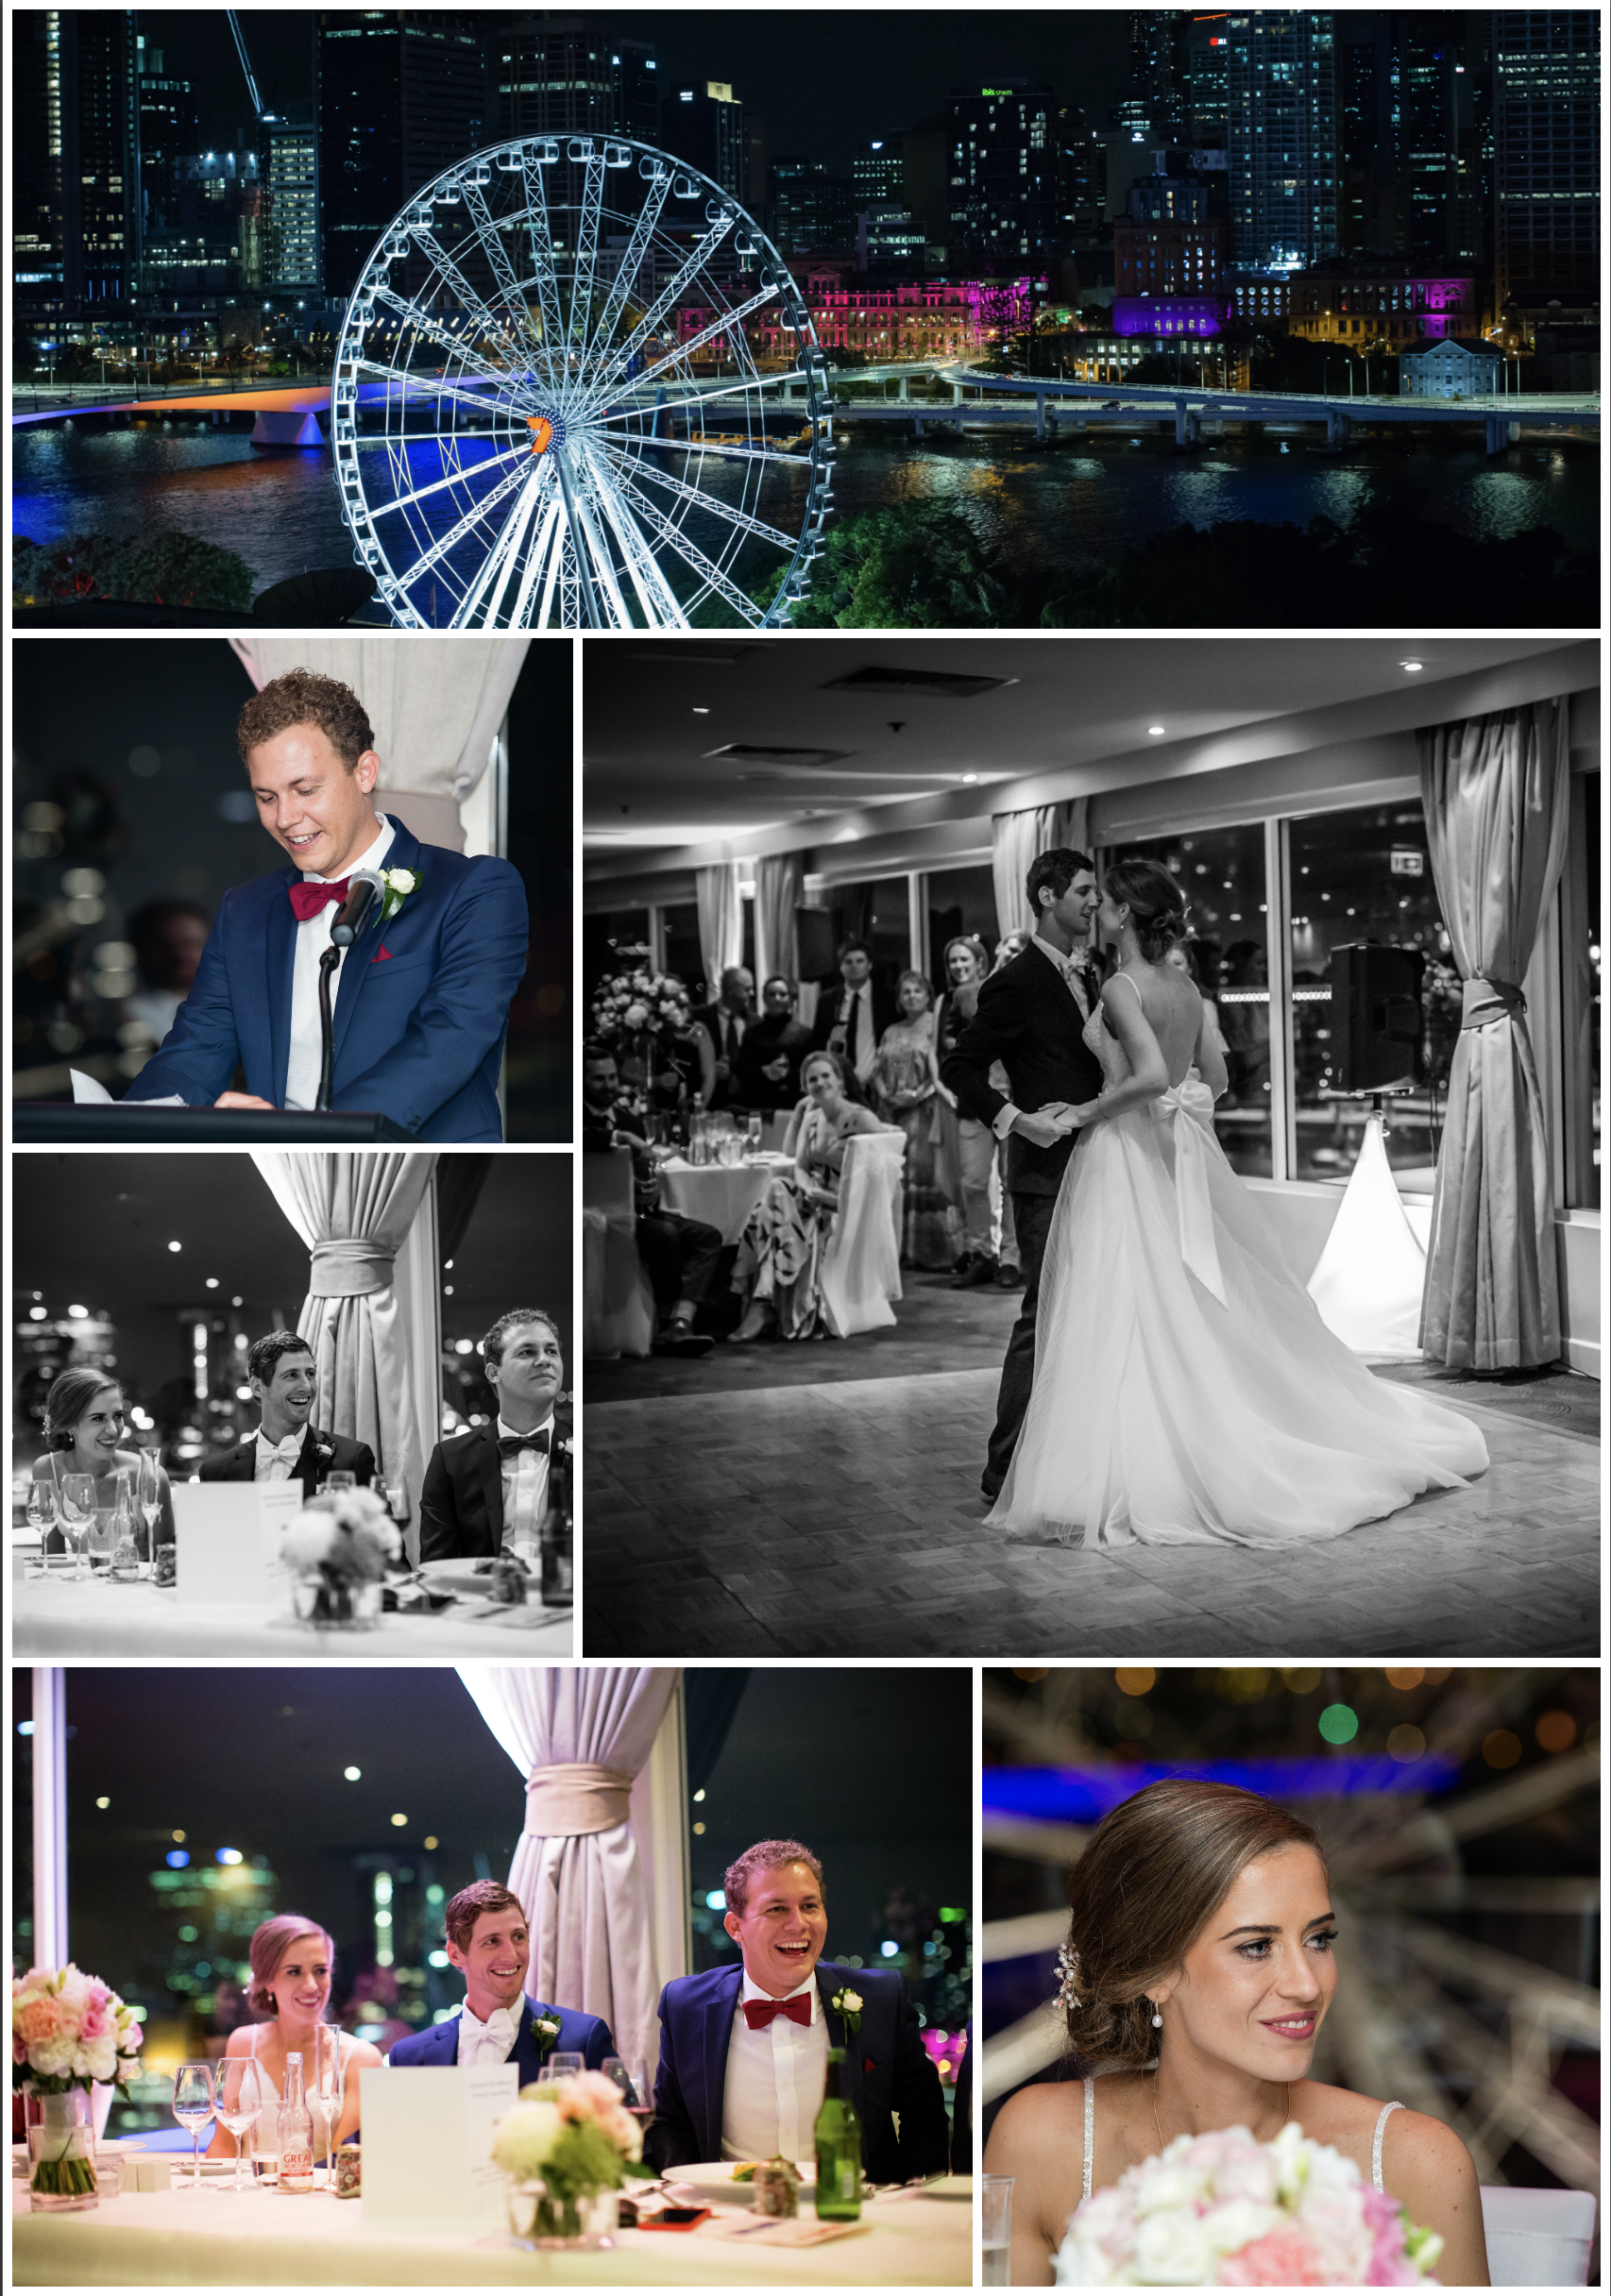 Raw Design Media - Wedding Photography